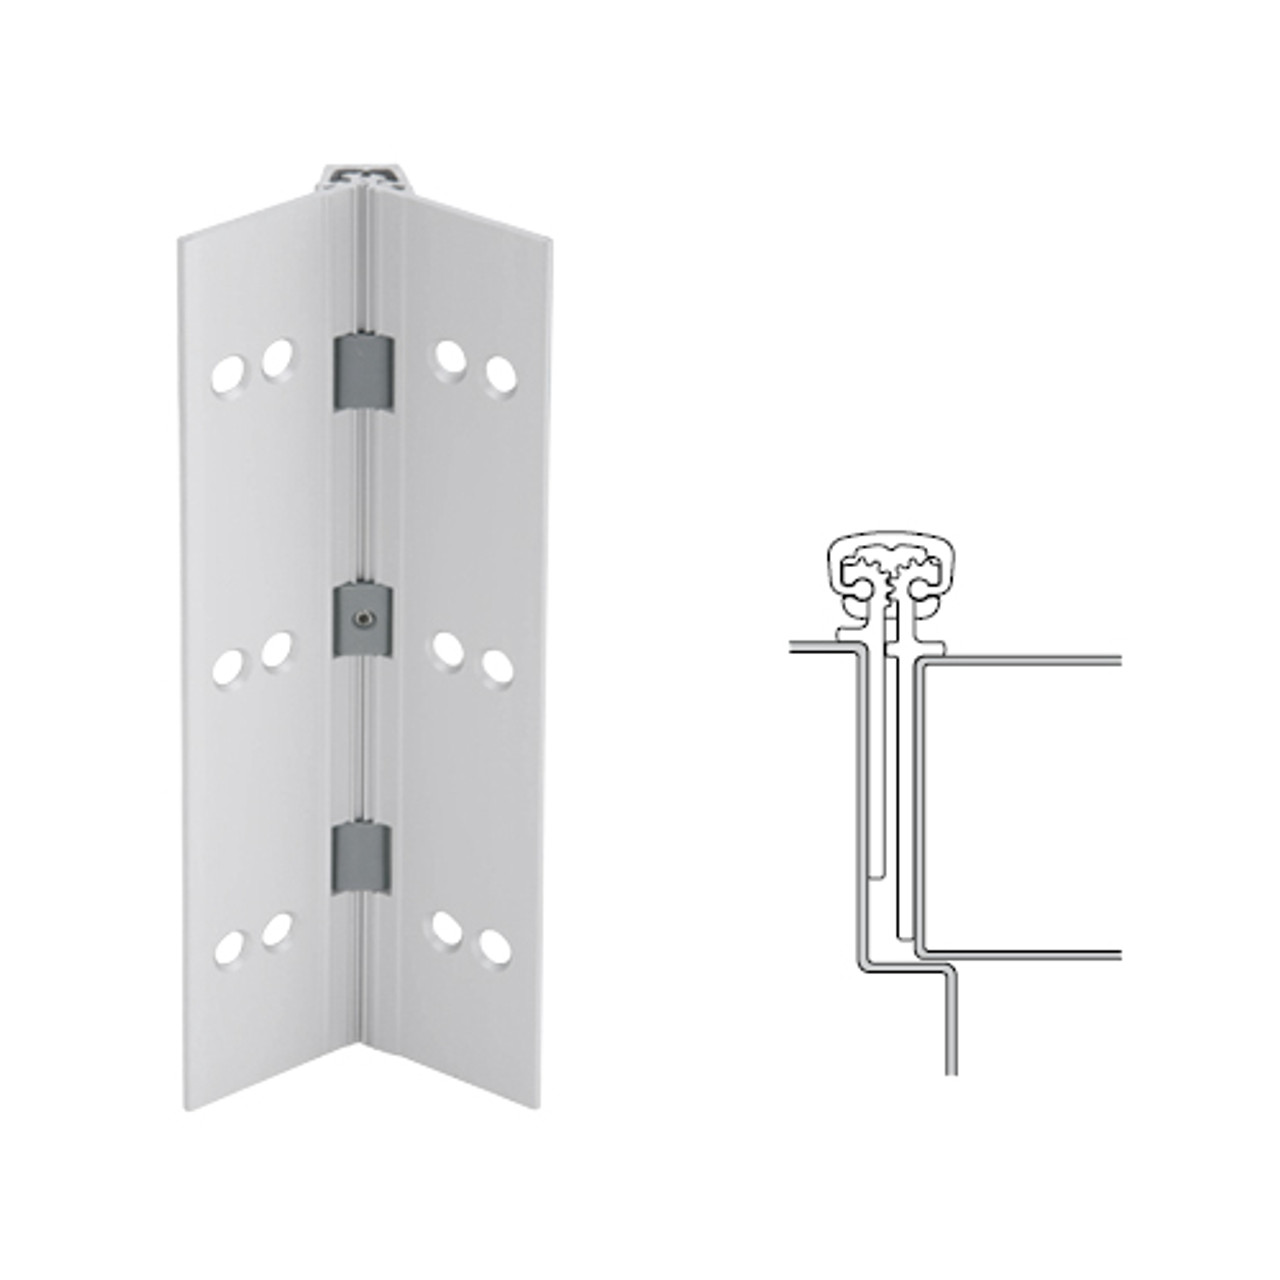 026XY-US28-95-SECHM IVES Full Mortise Continuous Geared Hinges with Security Screws - Hex Pin Drive in Satin Aluminum